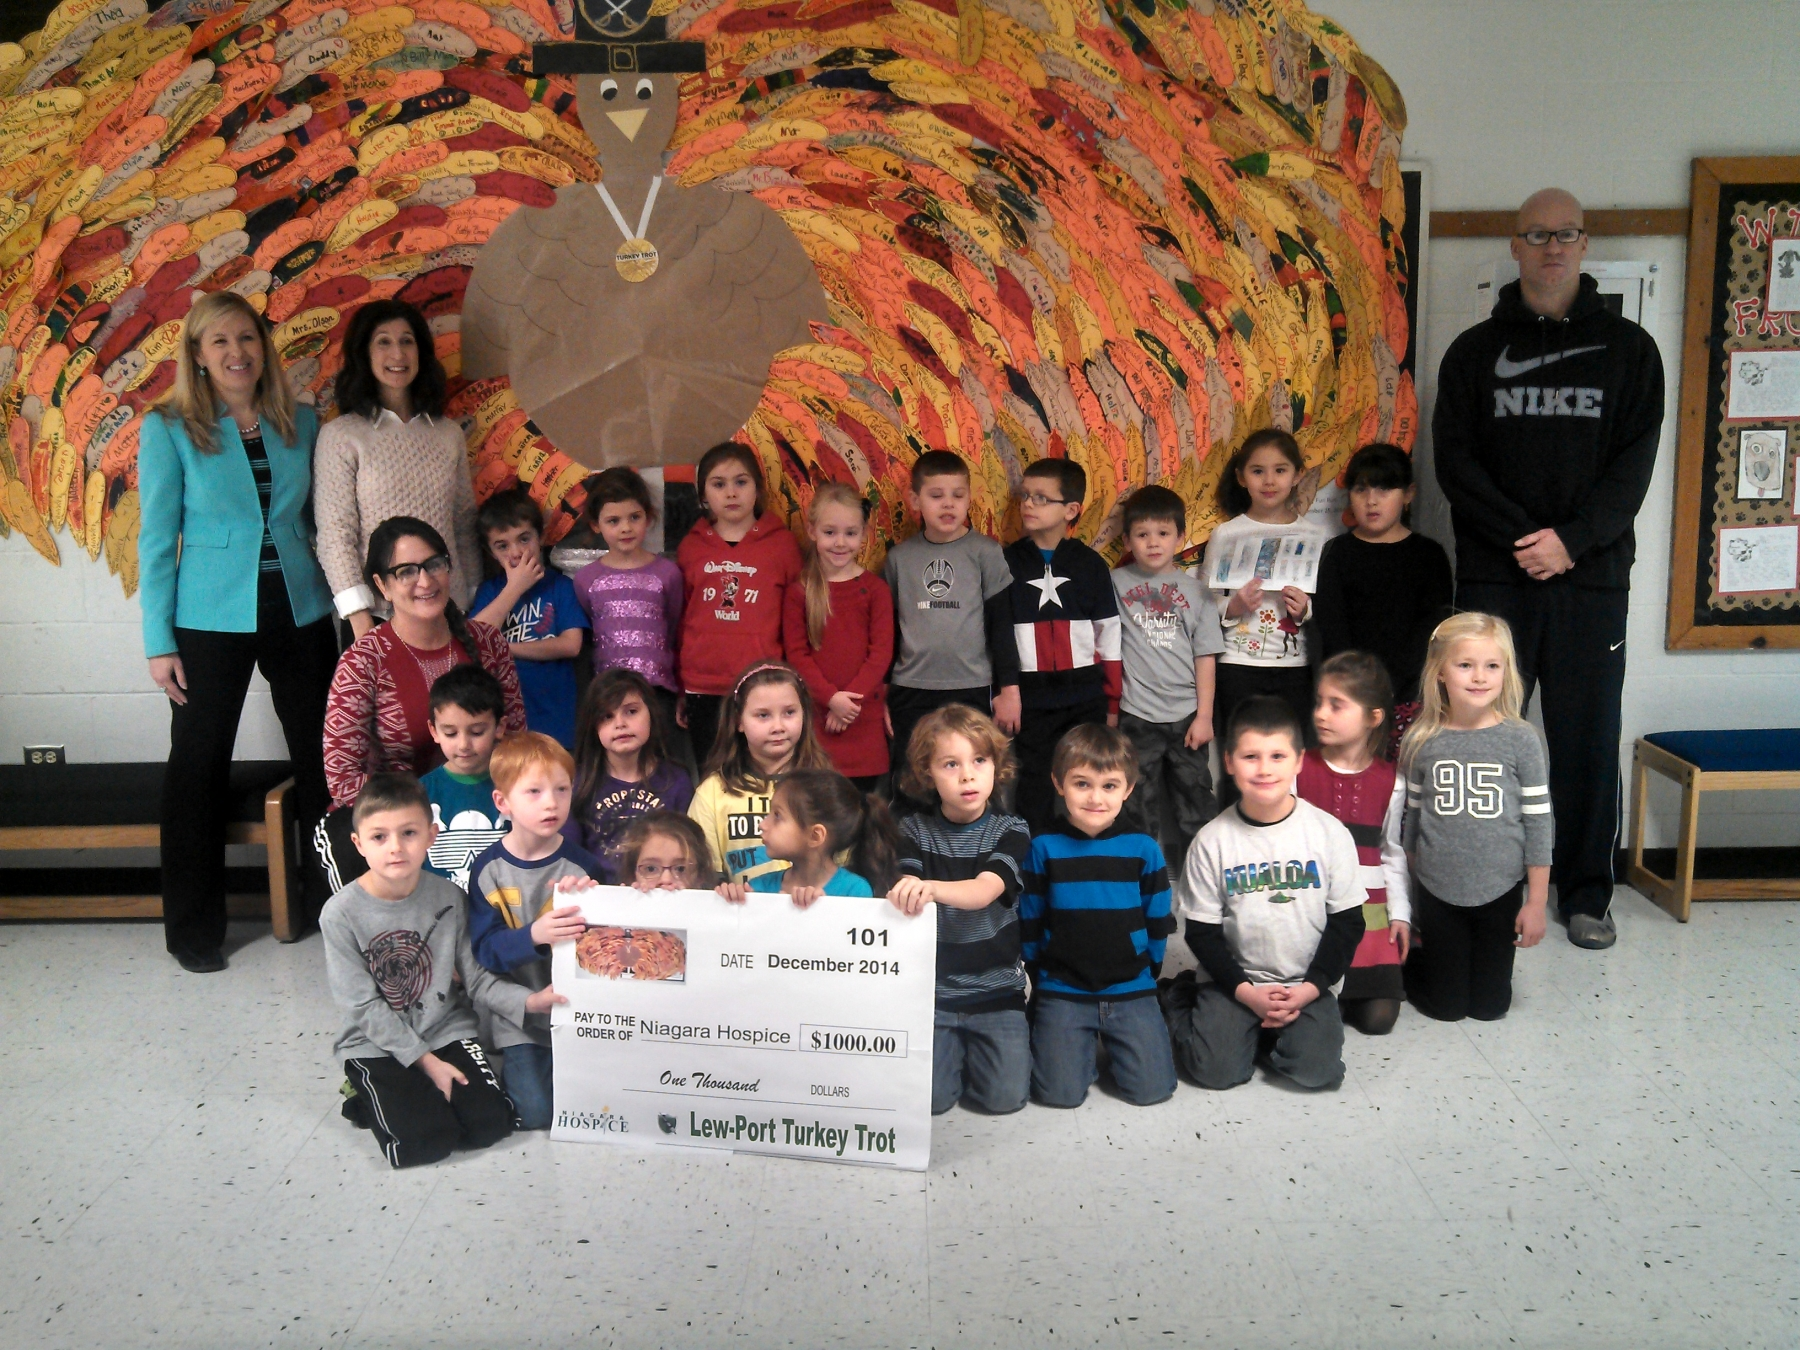 Lewiston Porter Primary Education Center Principal Tamara Larson, along with Physical Education teachers Cindy Sanoian and Matt Bradshaw present Maureen Rizzo of Niagara Hospice with a check for $1000 raised by the Lew-Port Turkey Trot. Students from Mrs. Milleville and Mrs. Allen-Thomas' classes  are shown in front of the turkey that displays feathers sold for a dollar each as part of the event.